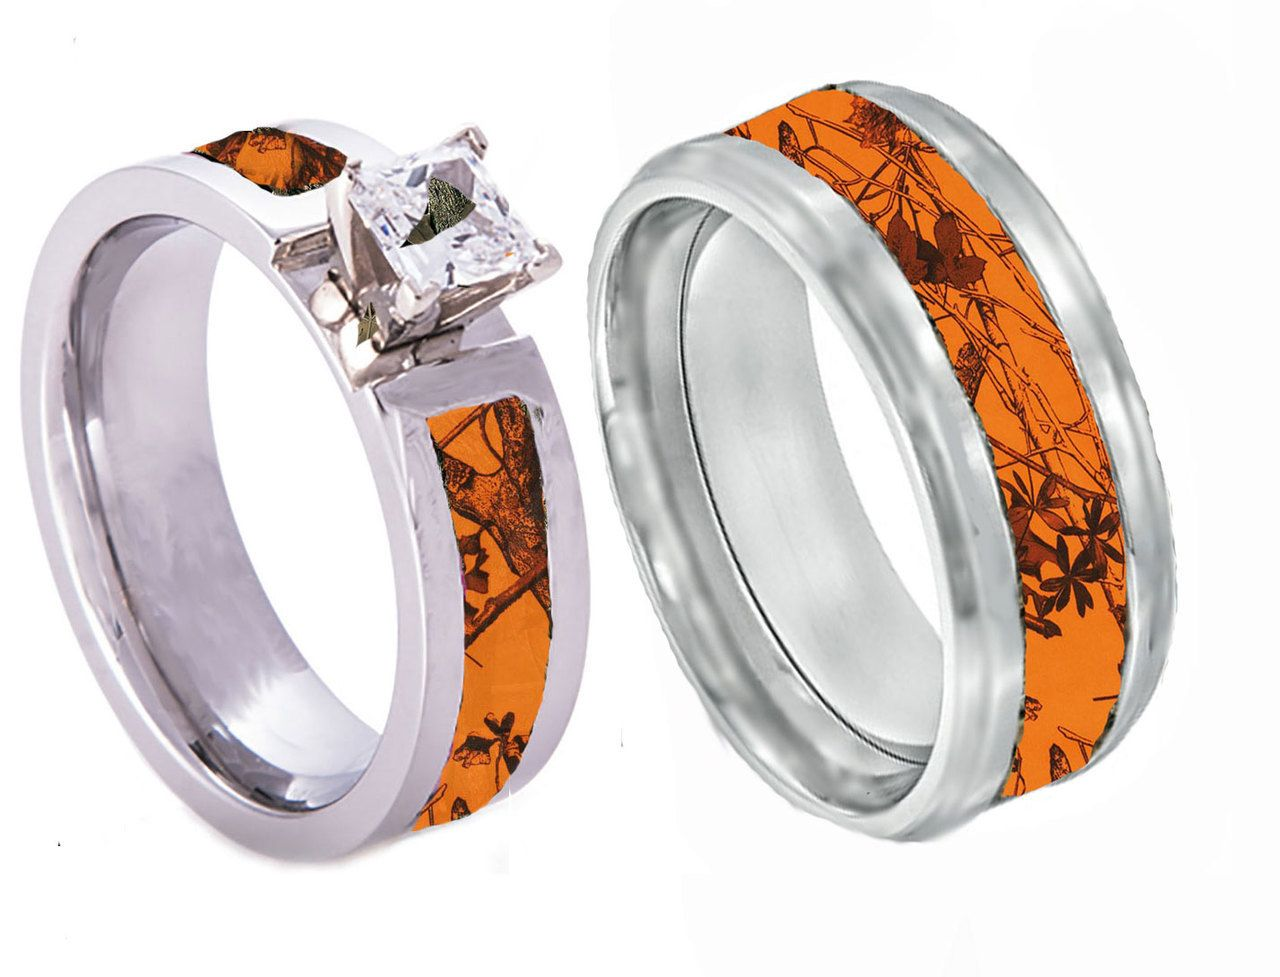 Exceptional ... Designs   Orange Camo Band Couples Ring Set With Stone, $44.95  (http://www.southernsistersdesigns.com/orange Camo Band Couples Ring  Set With Stone/)